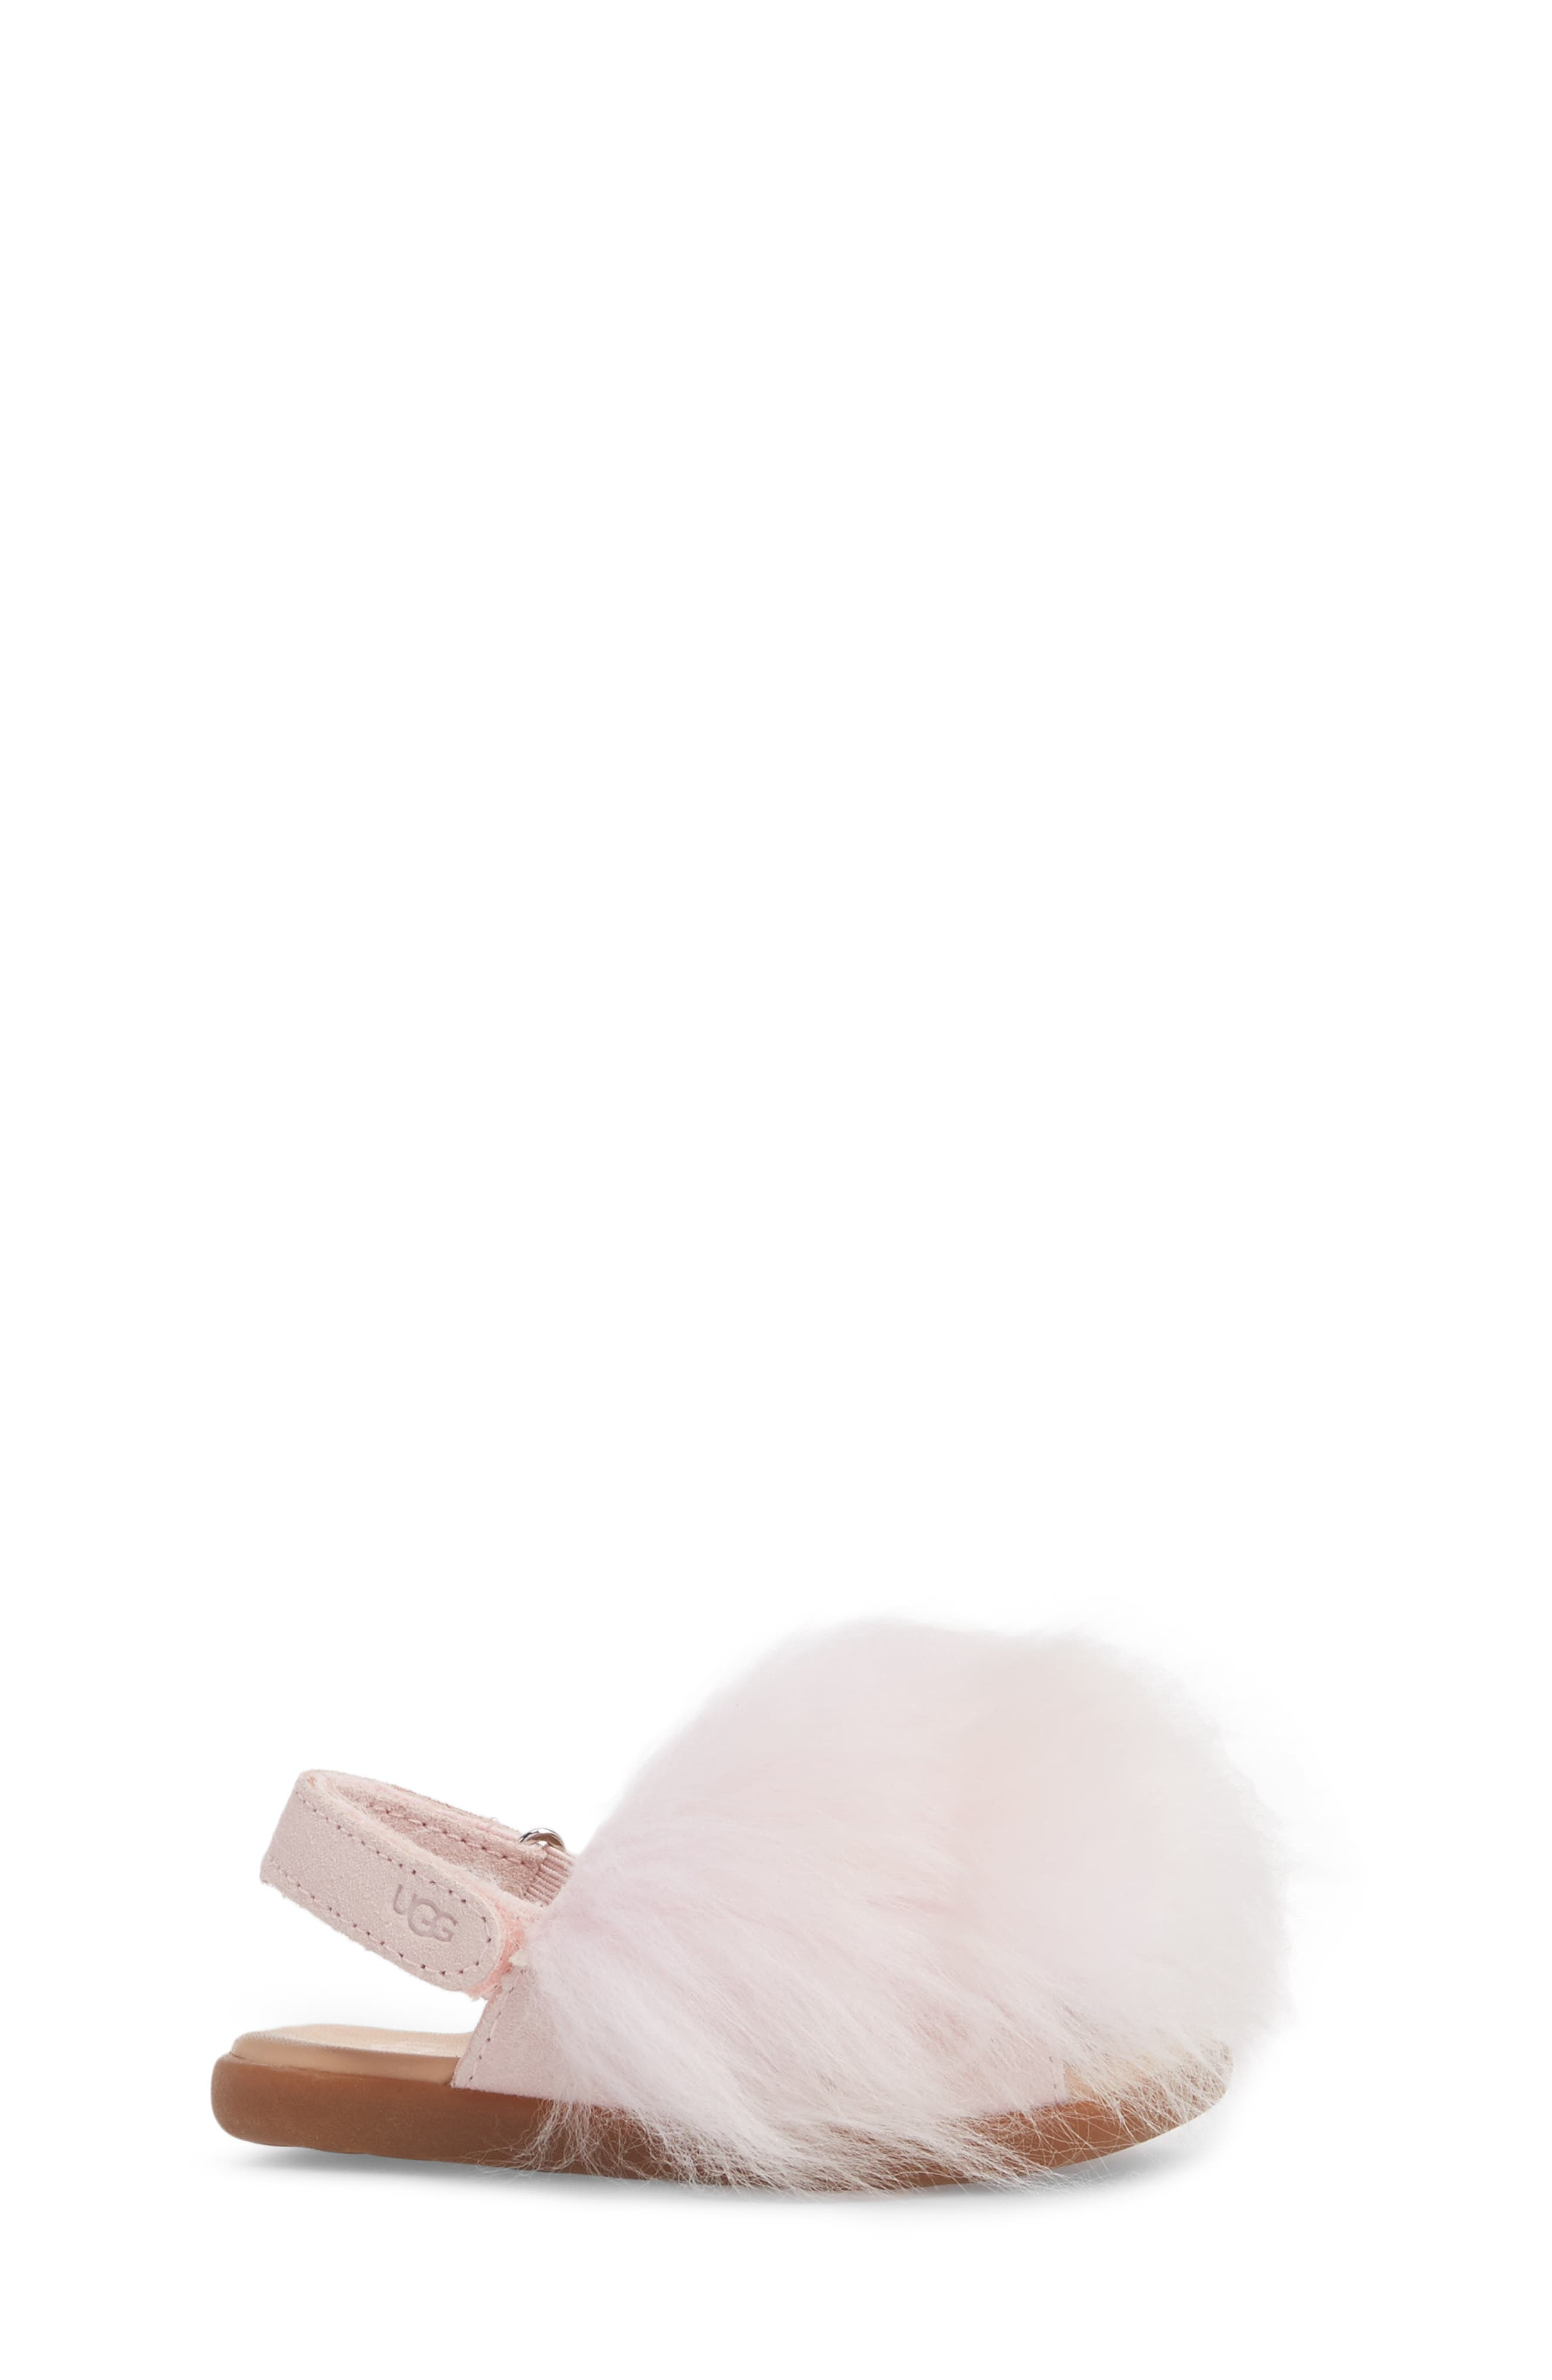 Holly Genuine Shearling Sandal,                             Alternate thumbnail 3, color,                             SEASHELL PINK